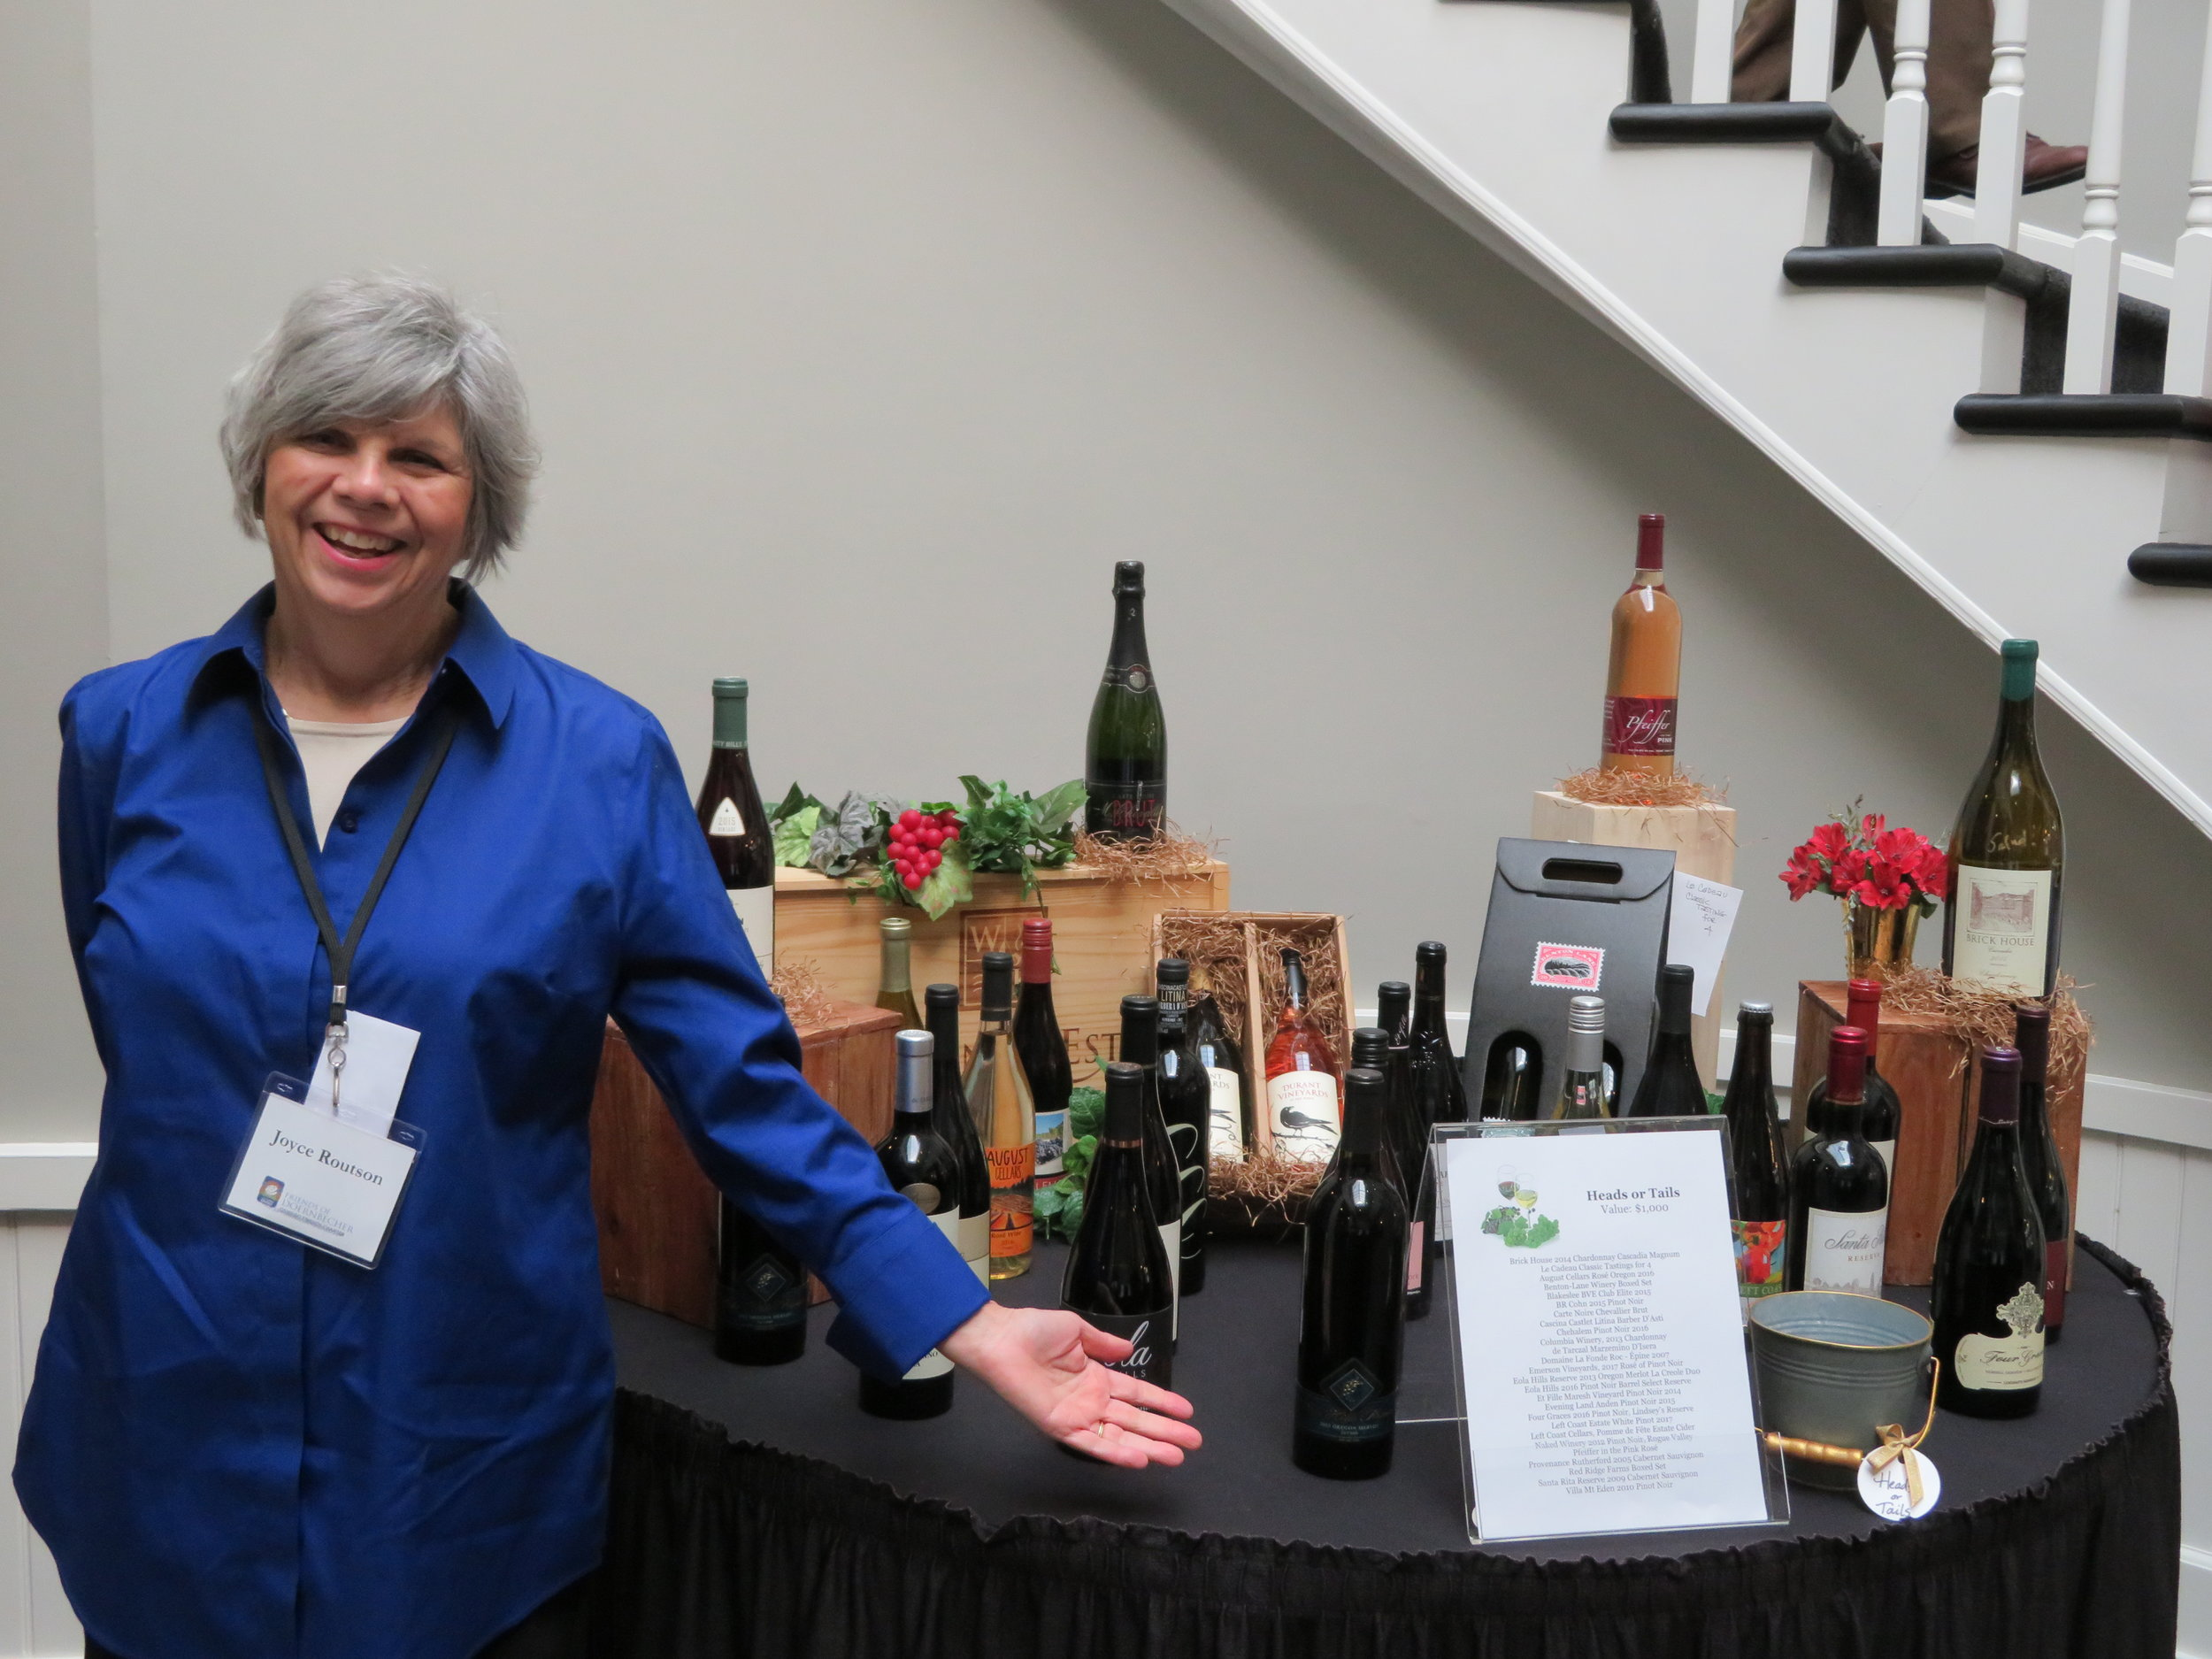 Volunteer Joyce shows off the wine lot.